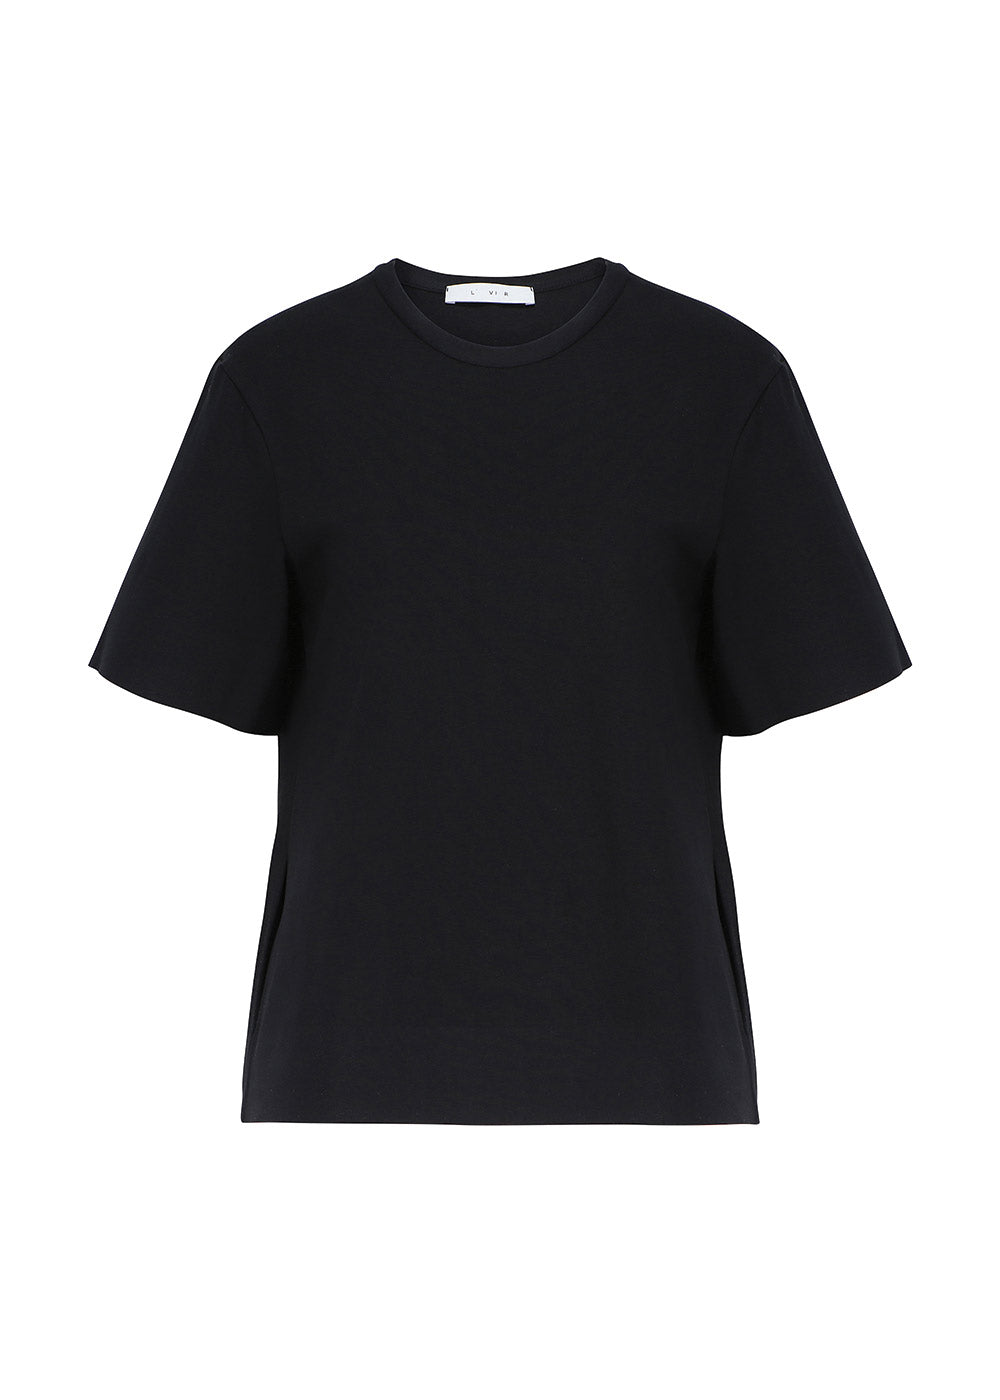 EMBROIDERED LOGO T-SHIRT BLACK